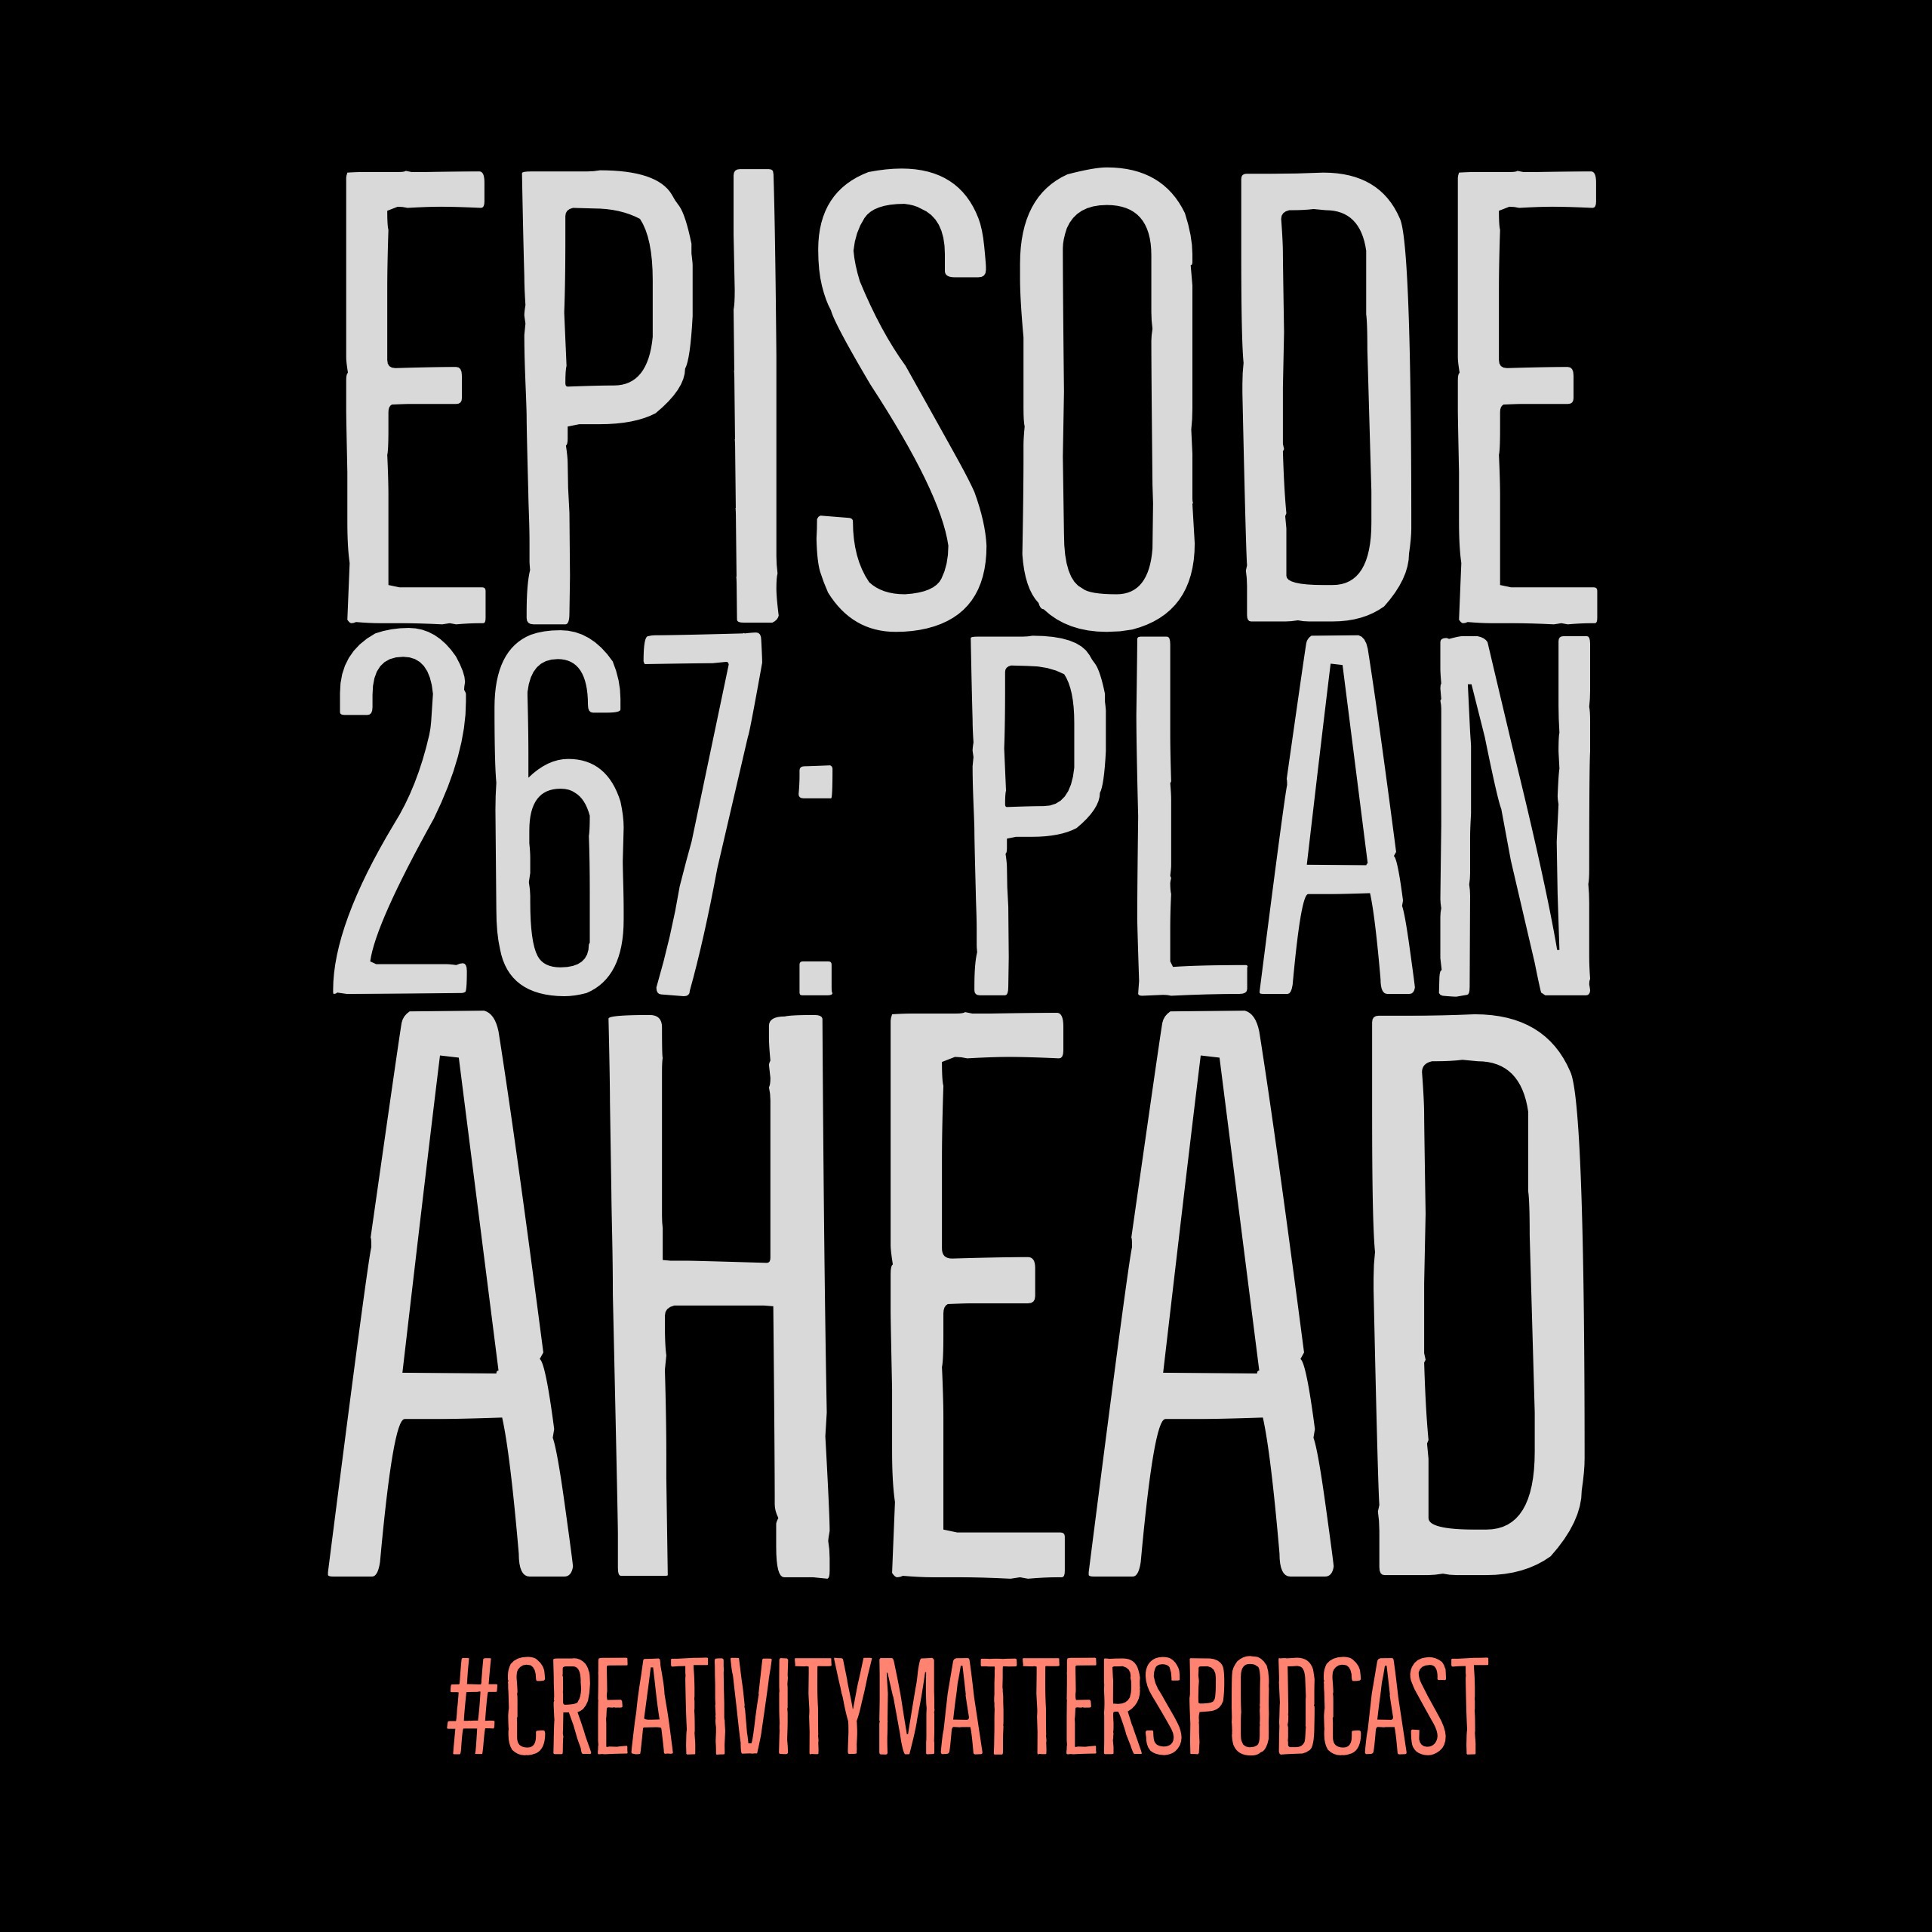 Episode 267: Plan Ahead